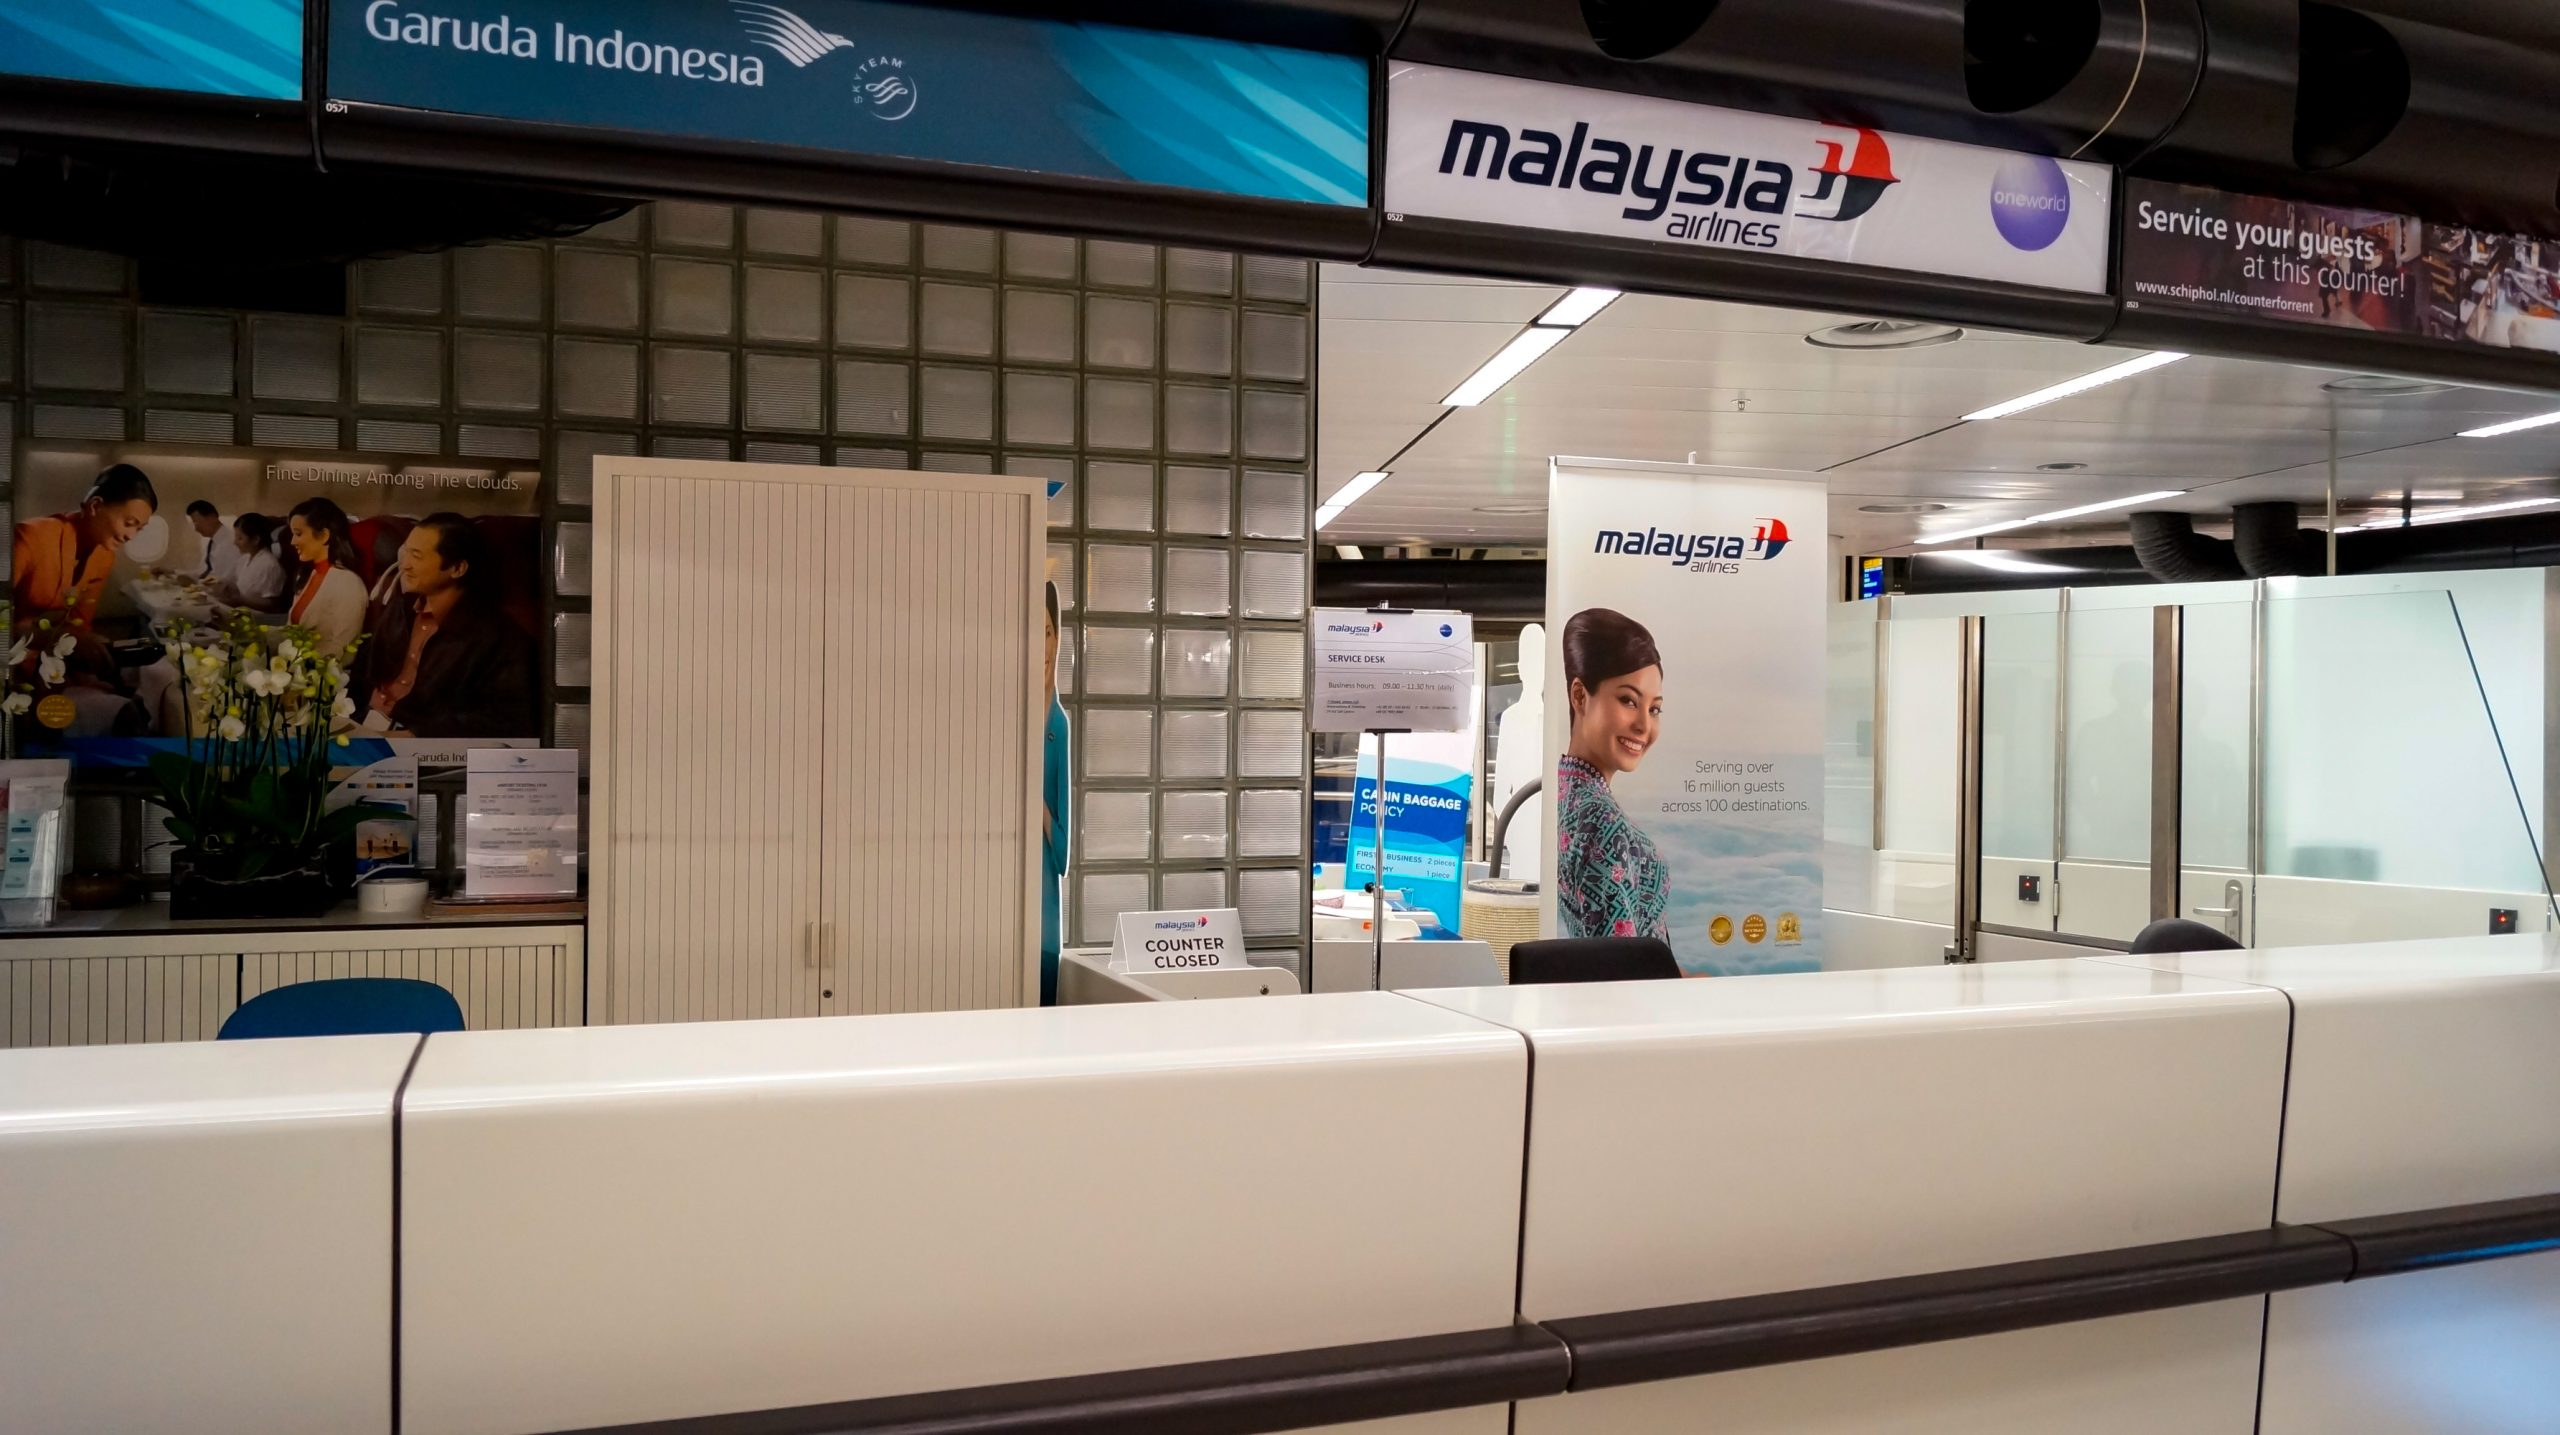 July 18, 2014: Schiphol Airport in Amsterdam, Departures Terminal 3, night hours. Closed counter of the Malaysia Airlines only a few hours after the information that the airline's plane flying from Amsterdam to Kuala Lumpur was shot down over the Ukraine.